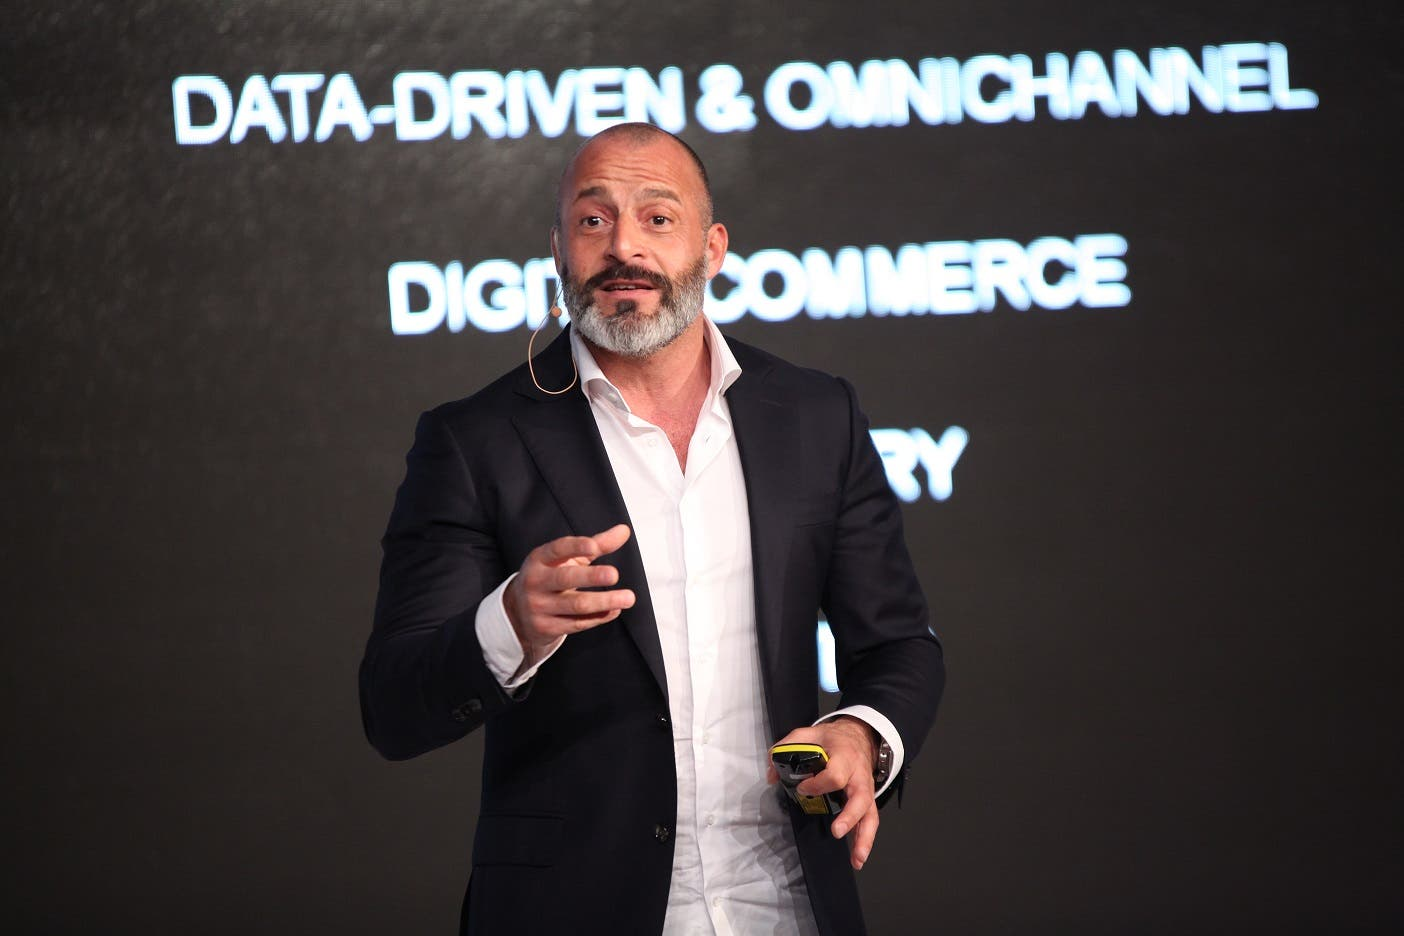 Professional speaker, and marketing and media expert Igor Beuker speaking at DMF. (Courtesy: SPOTON Media and Events)